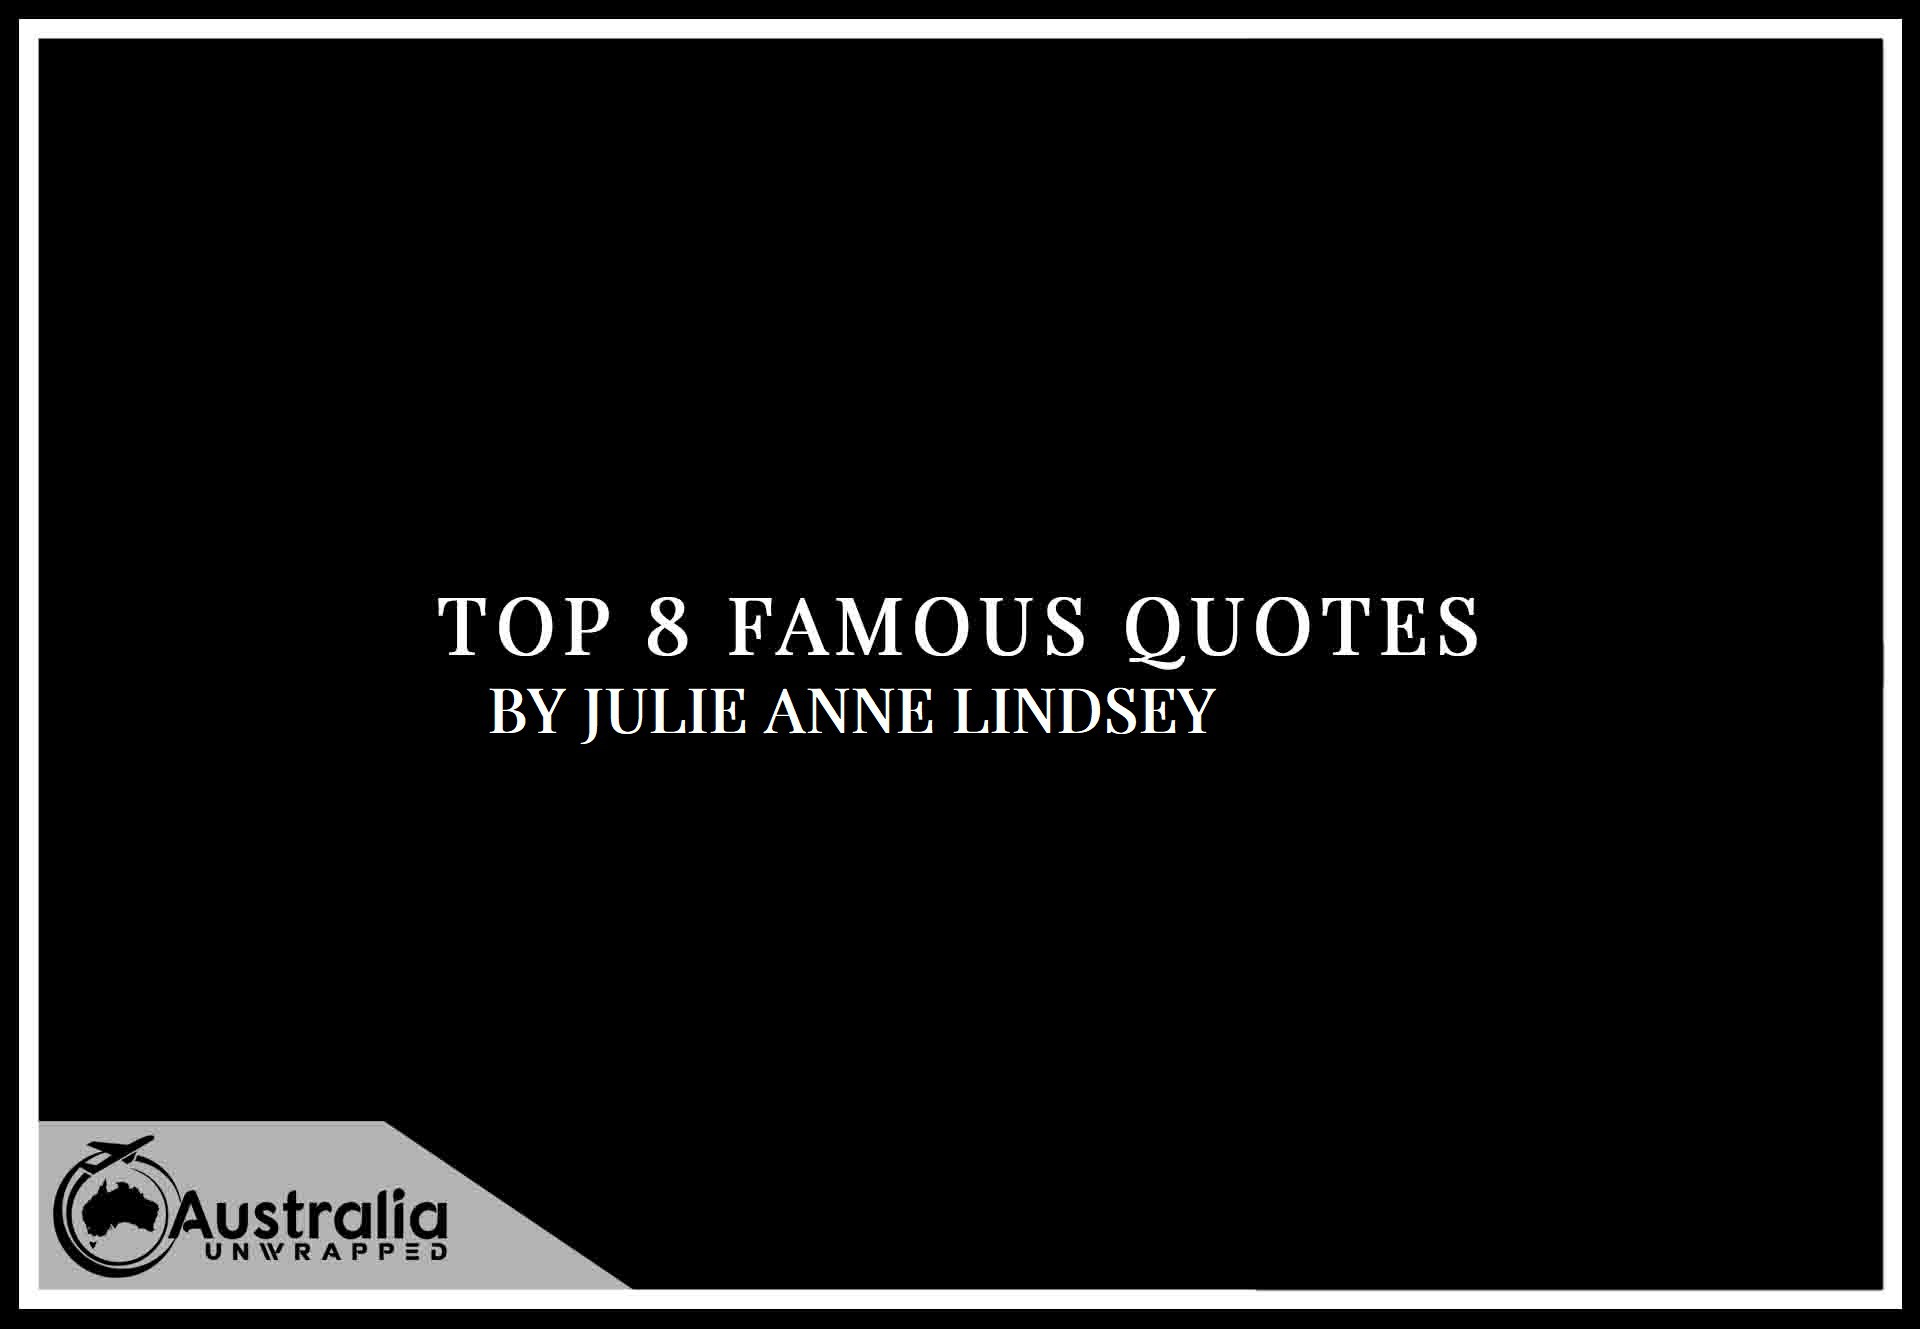 Top 8 Famous Quotes by Author Julie Anne Lindsey